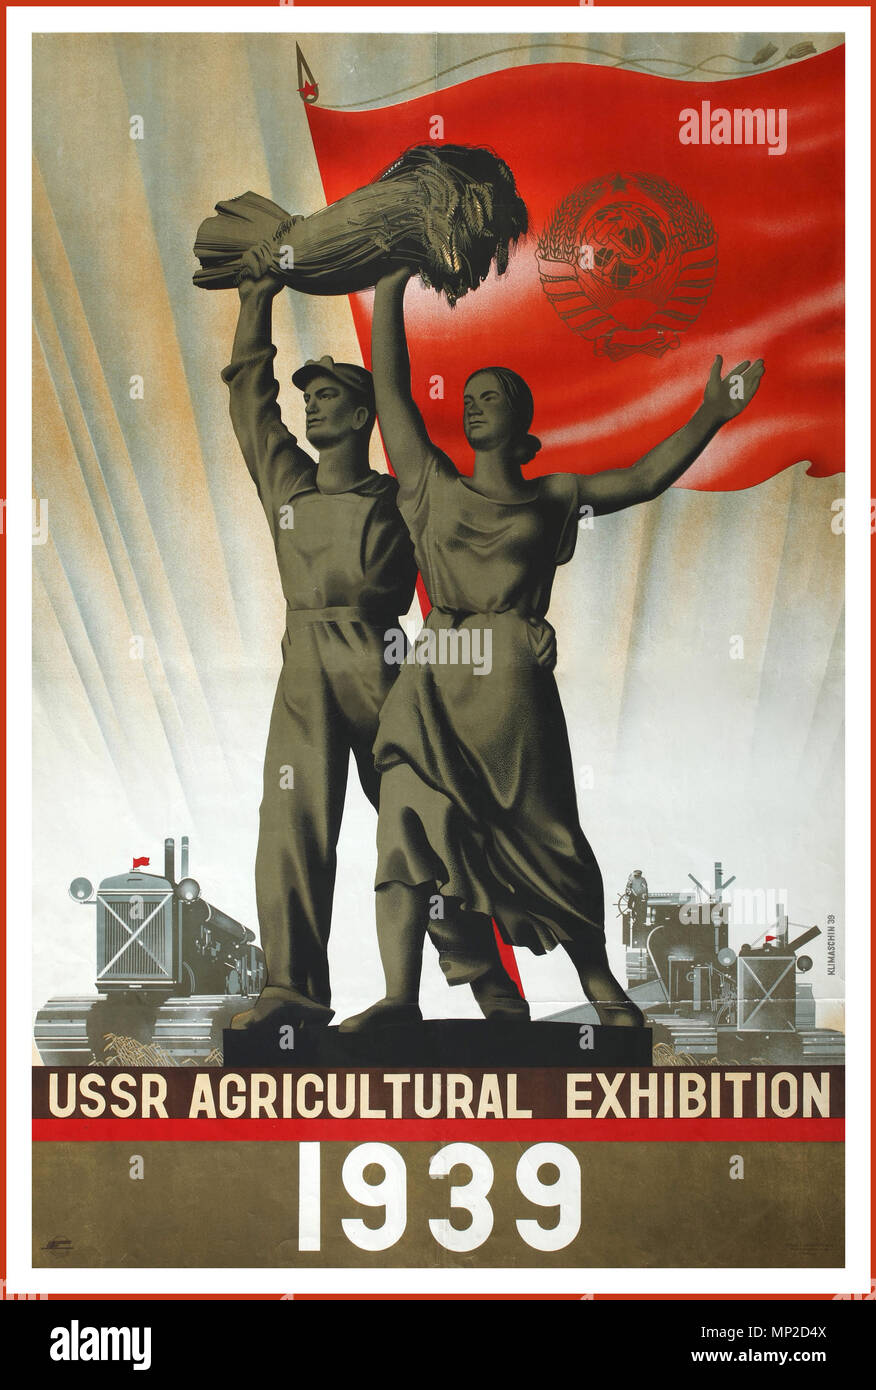 1939 Vintage Ussr Propaganda Intourist Graphic Industry Travel Poster Promoting 1939 Union Agricultural Exhibition Russian Male